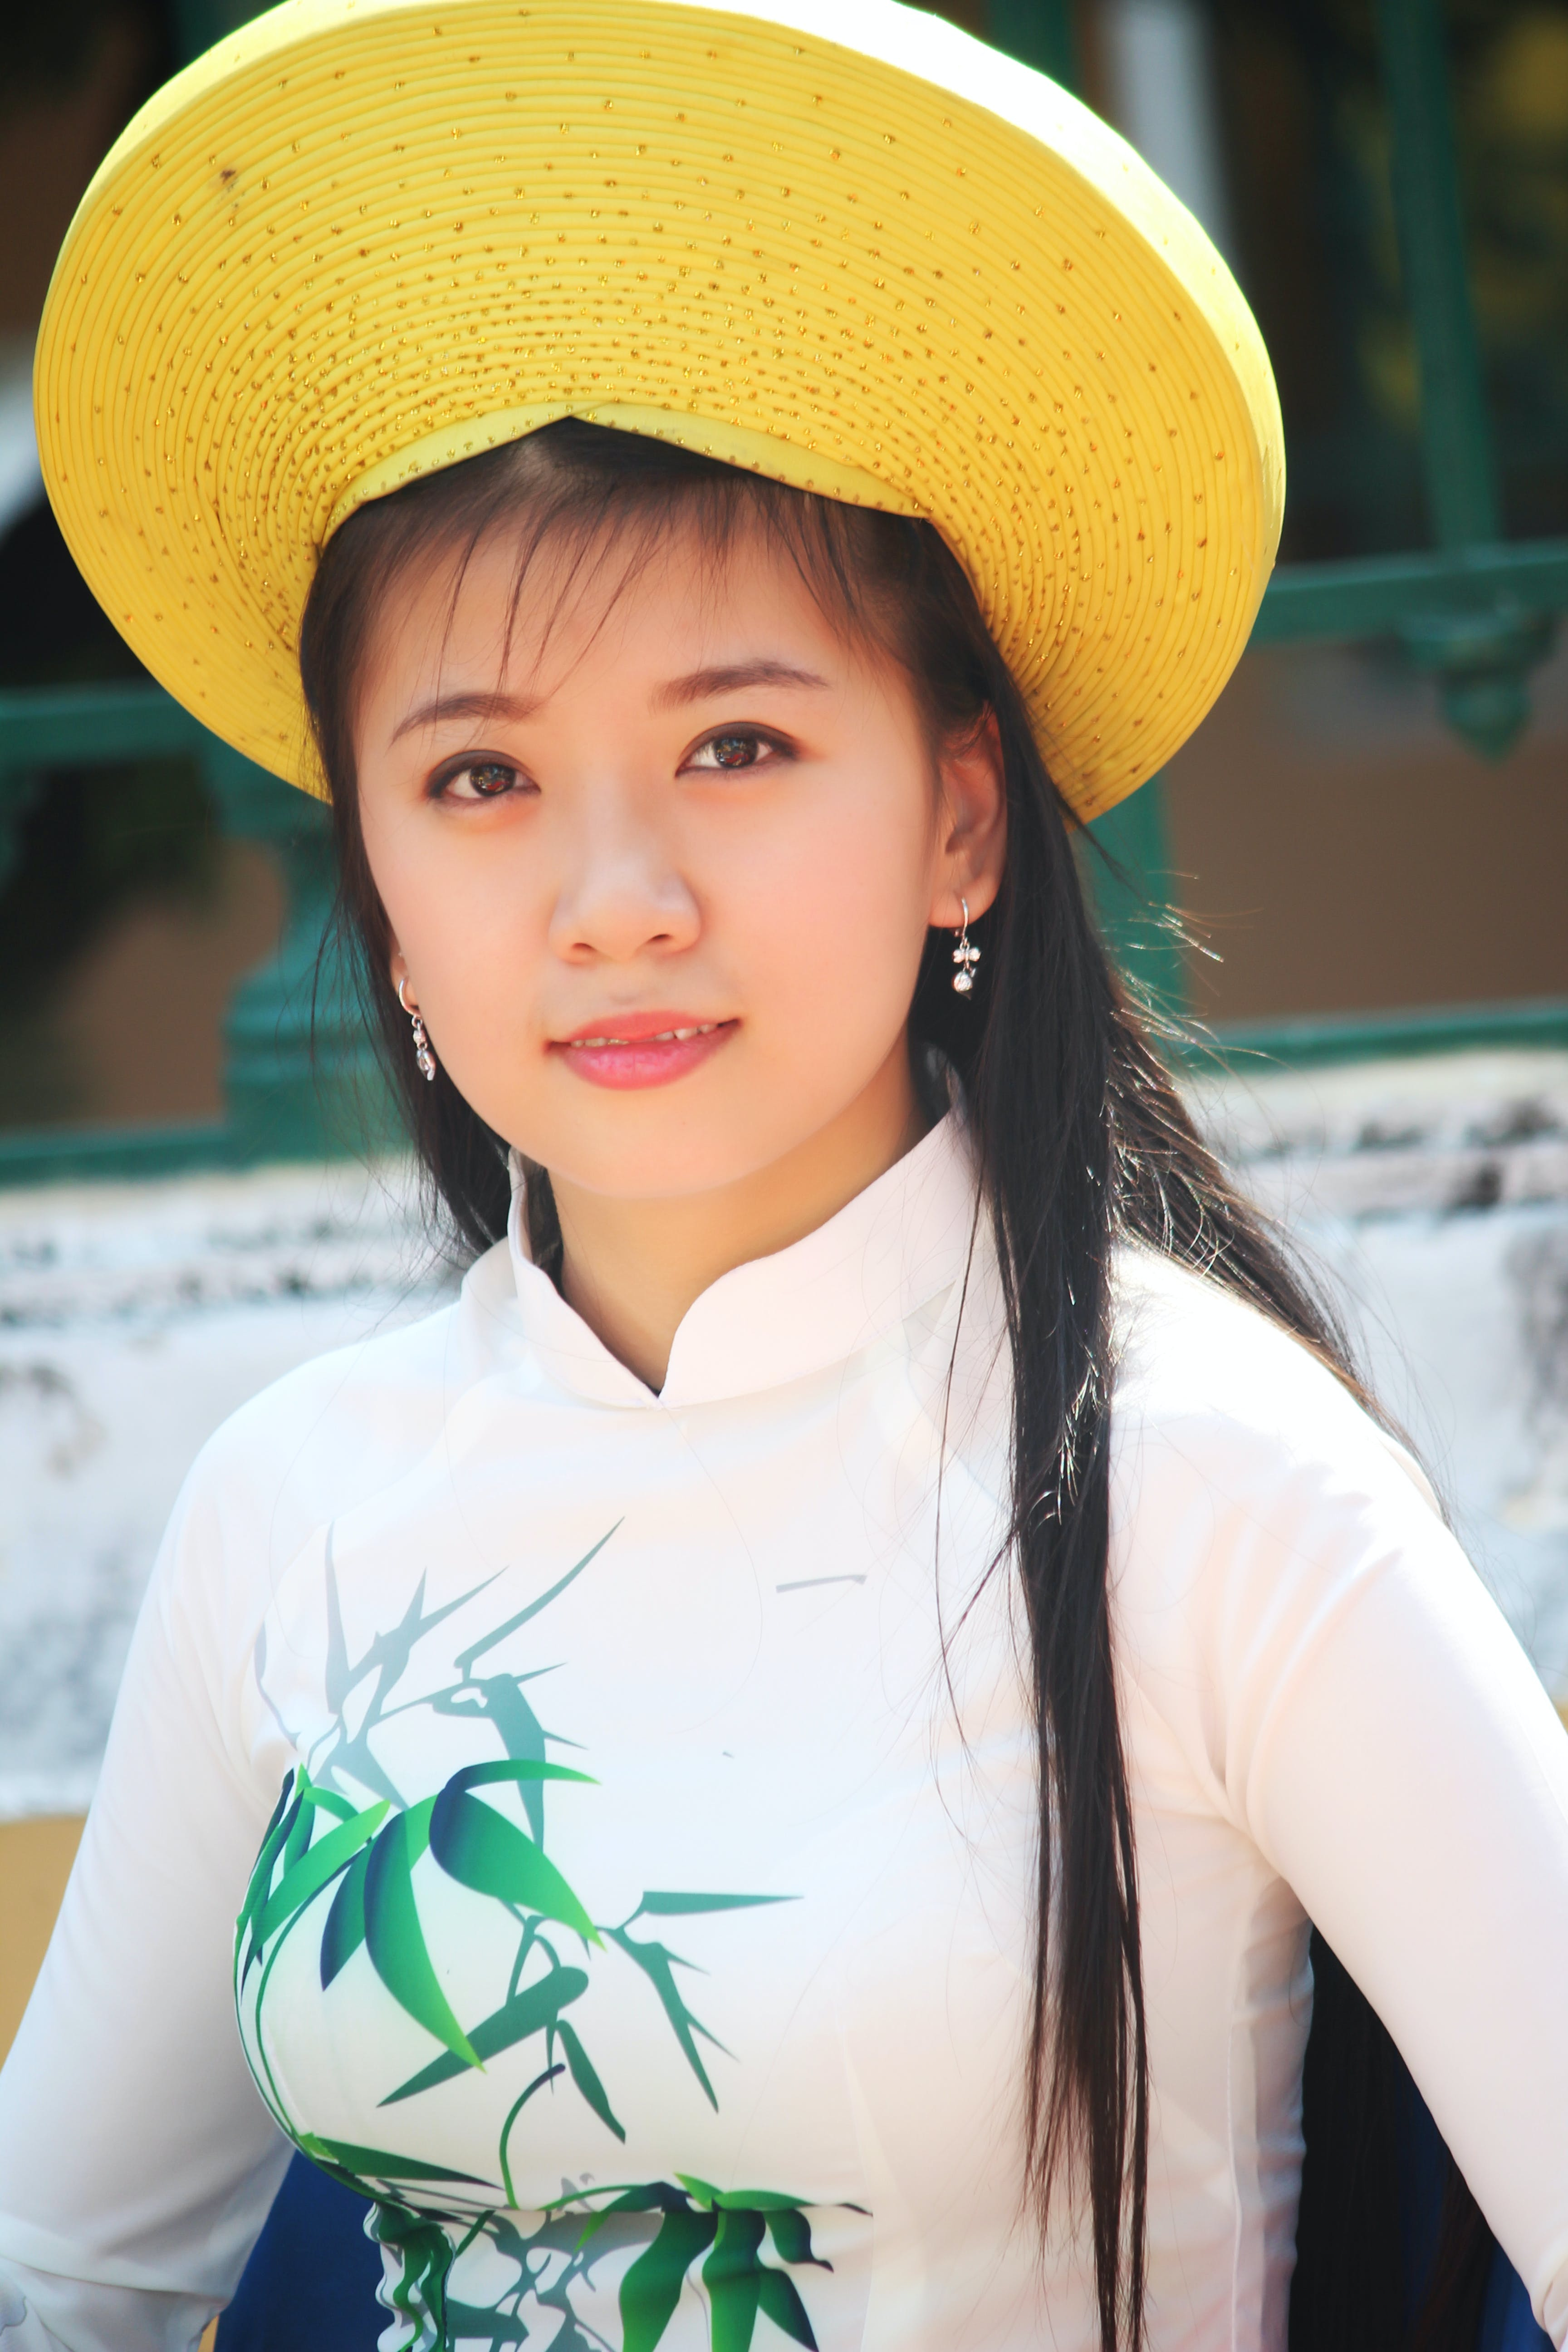 Woman Wearing White Long-sleeved Shirt and Yellow Hat